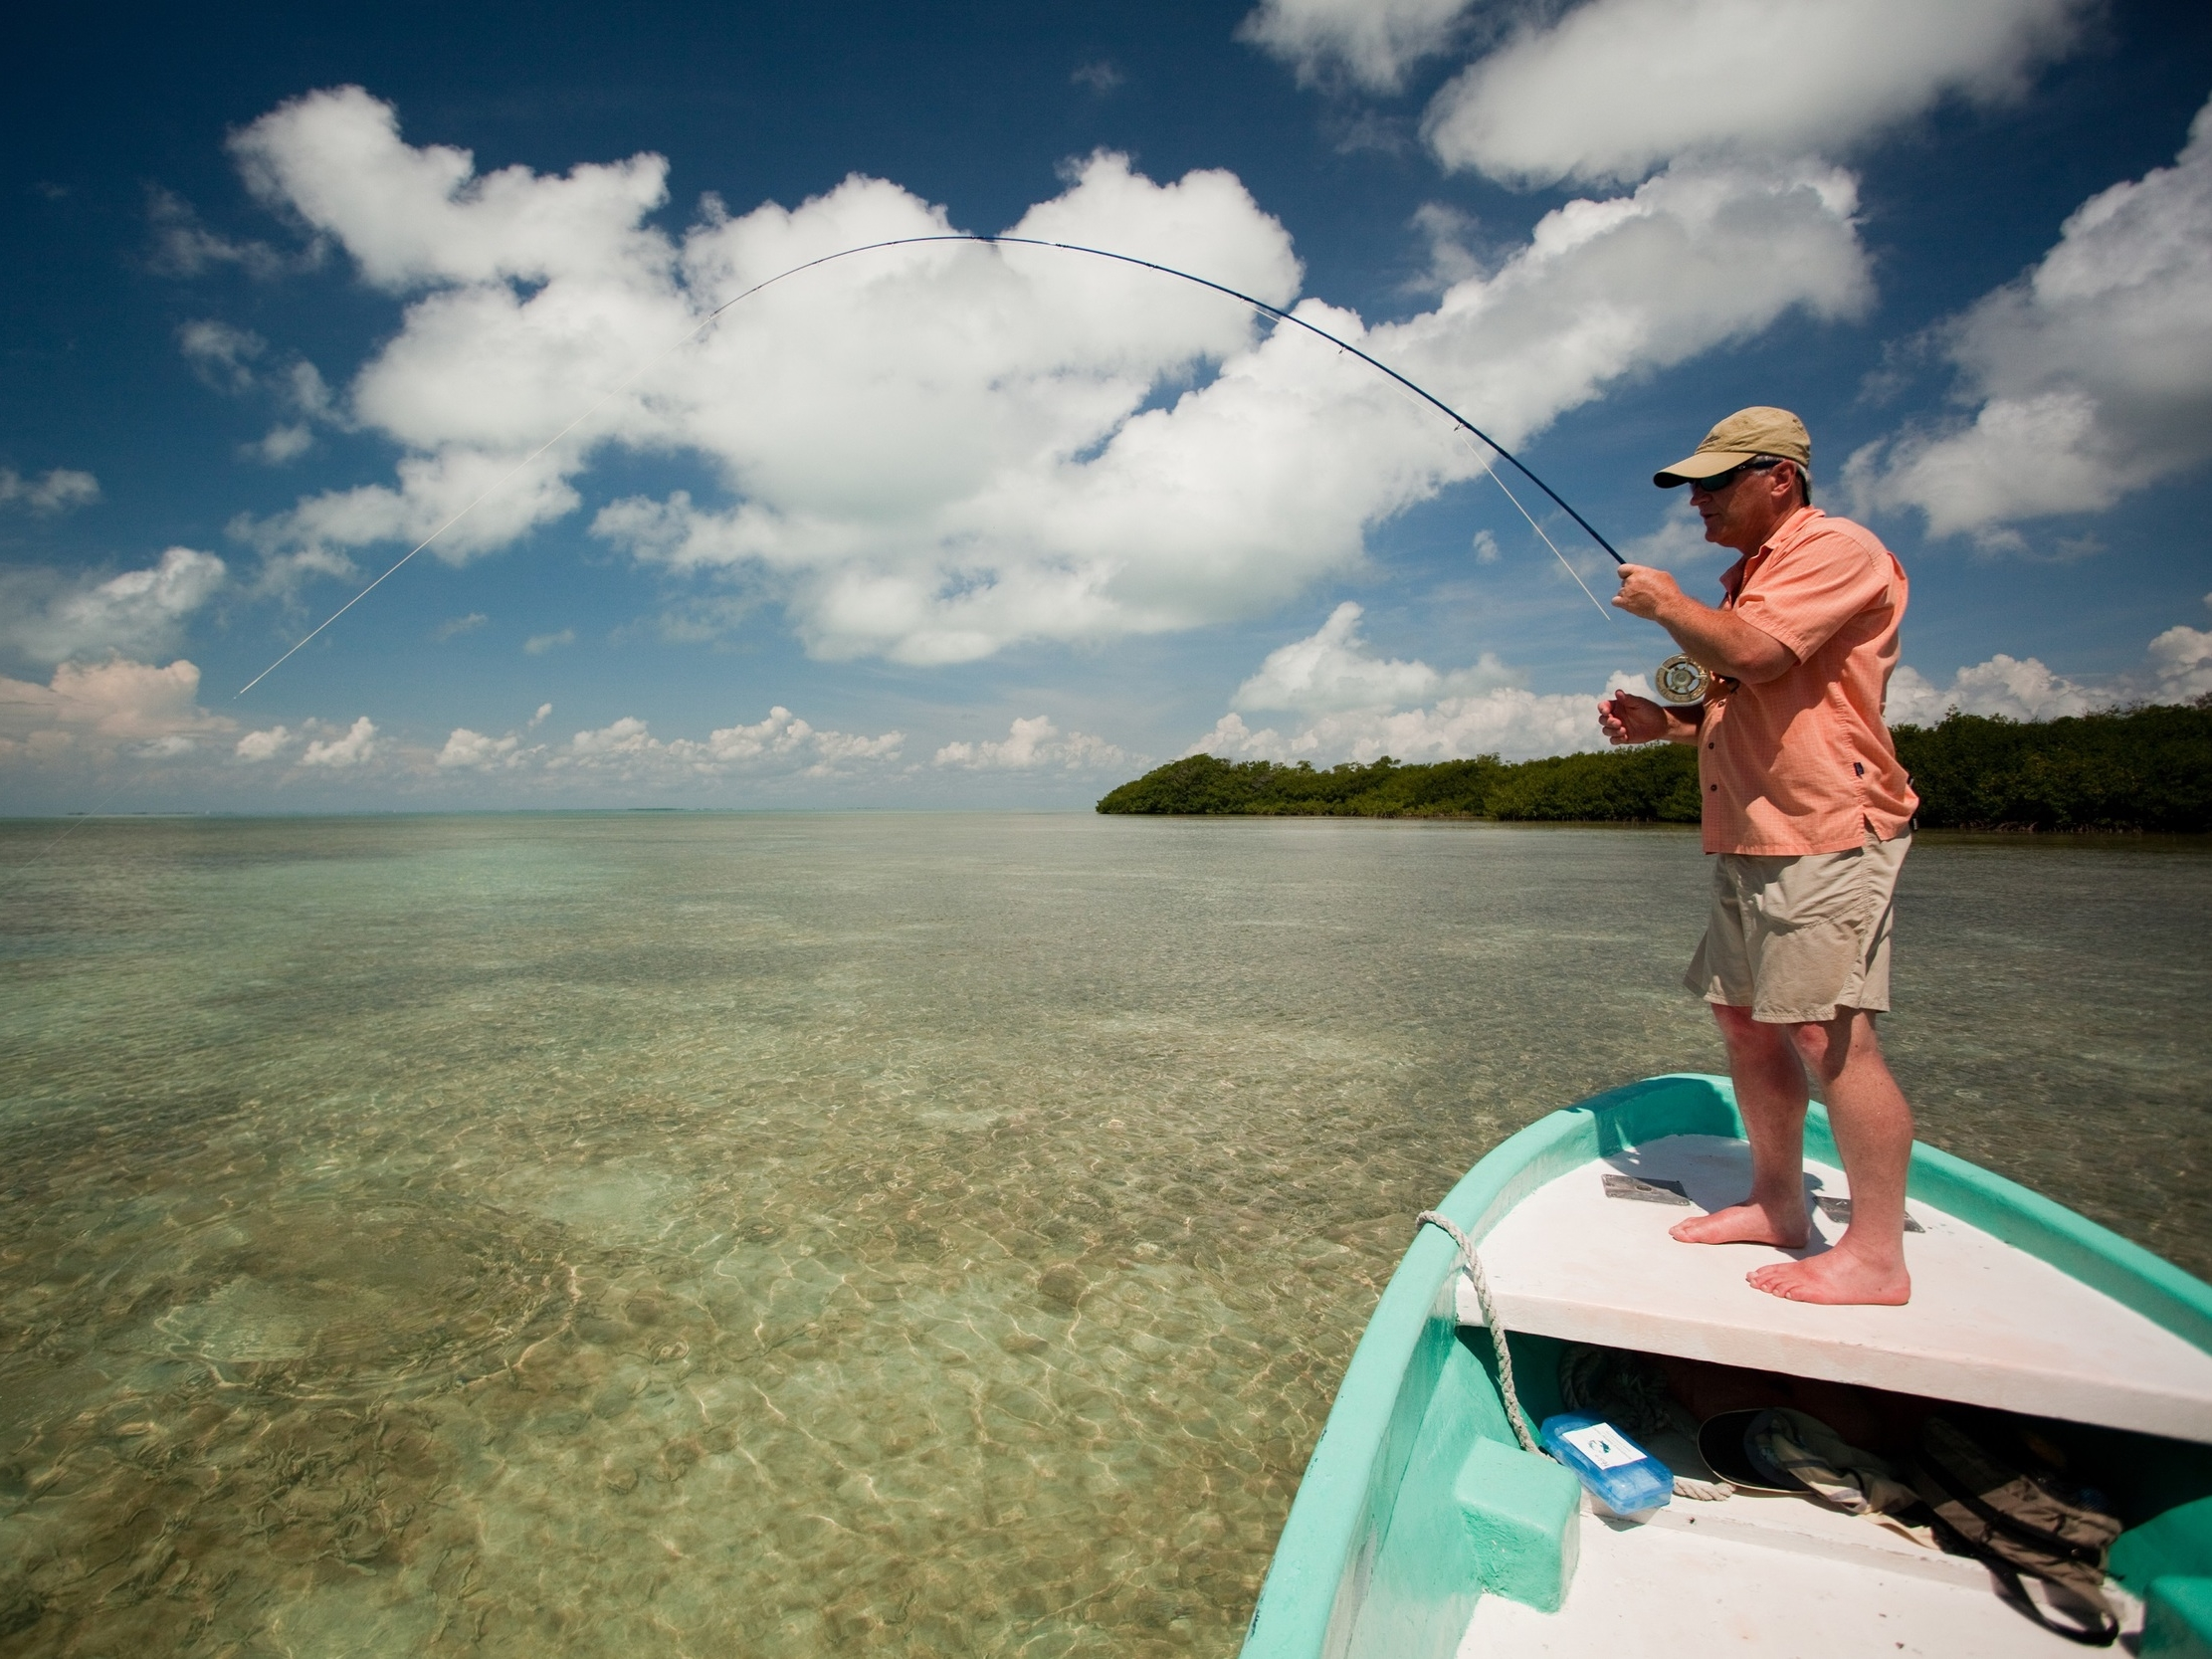 The reef and lagoons that lie between it and Ambergris offer an assortment of fishing opportunities